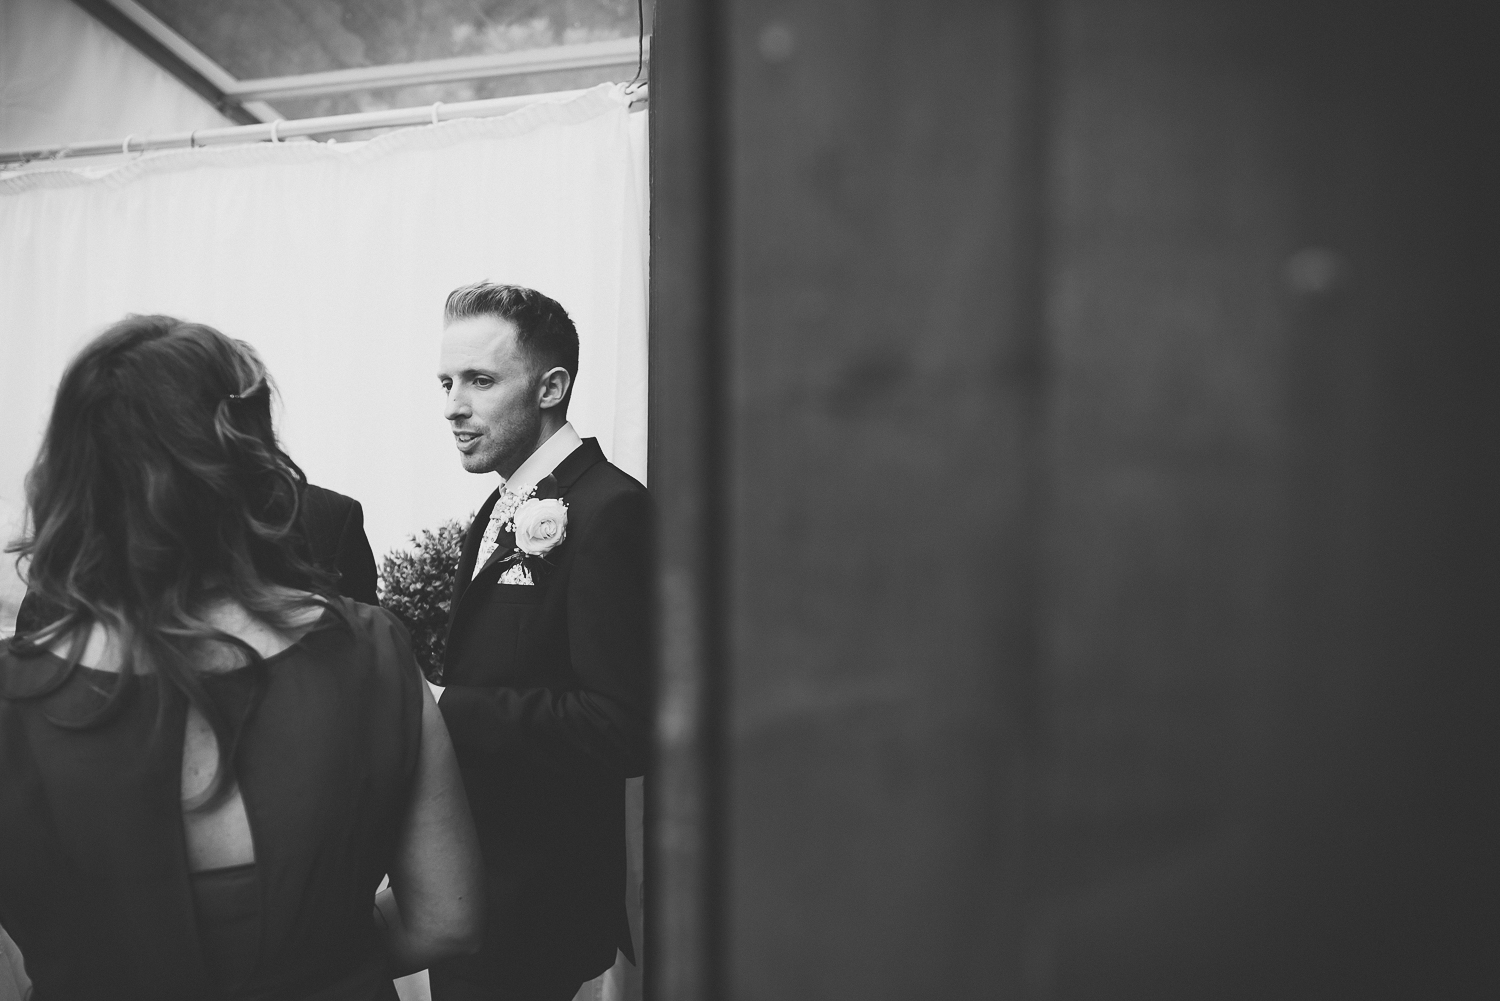 natural-documentary-wedding-photography-cardiff-south-wales-27.jpg